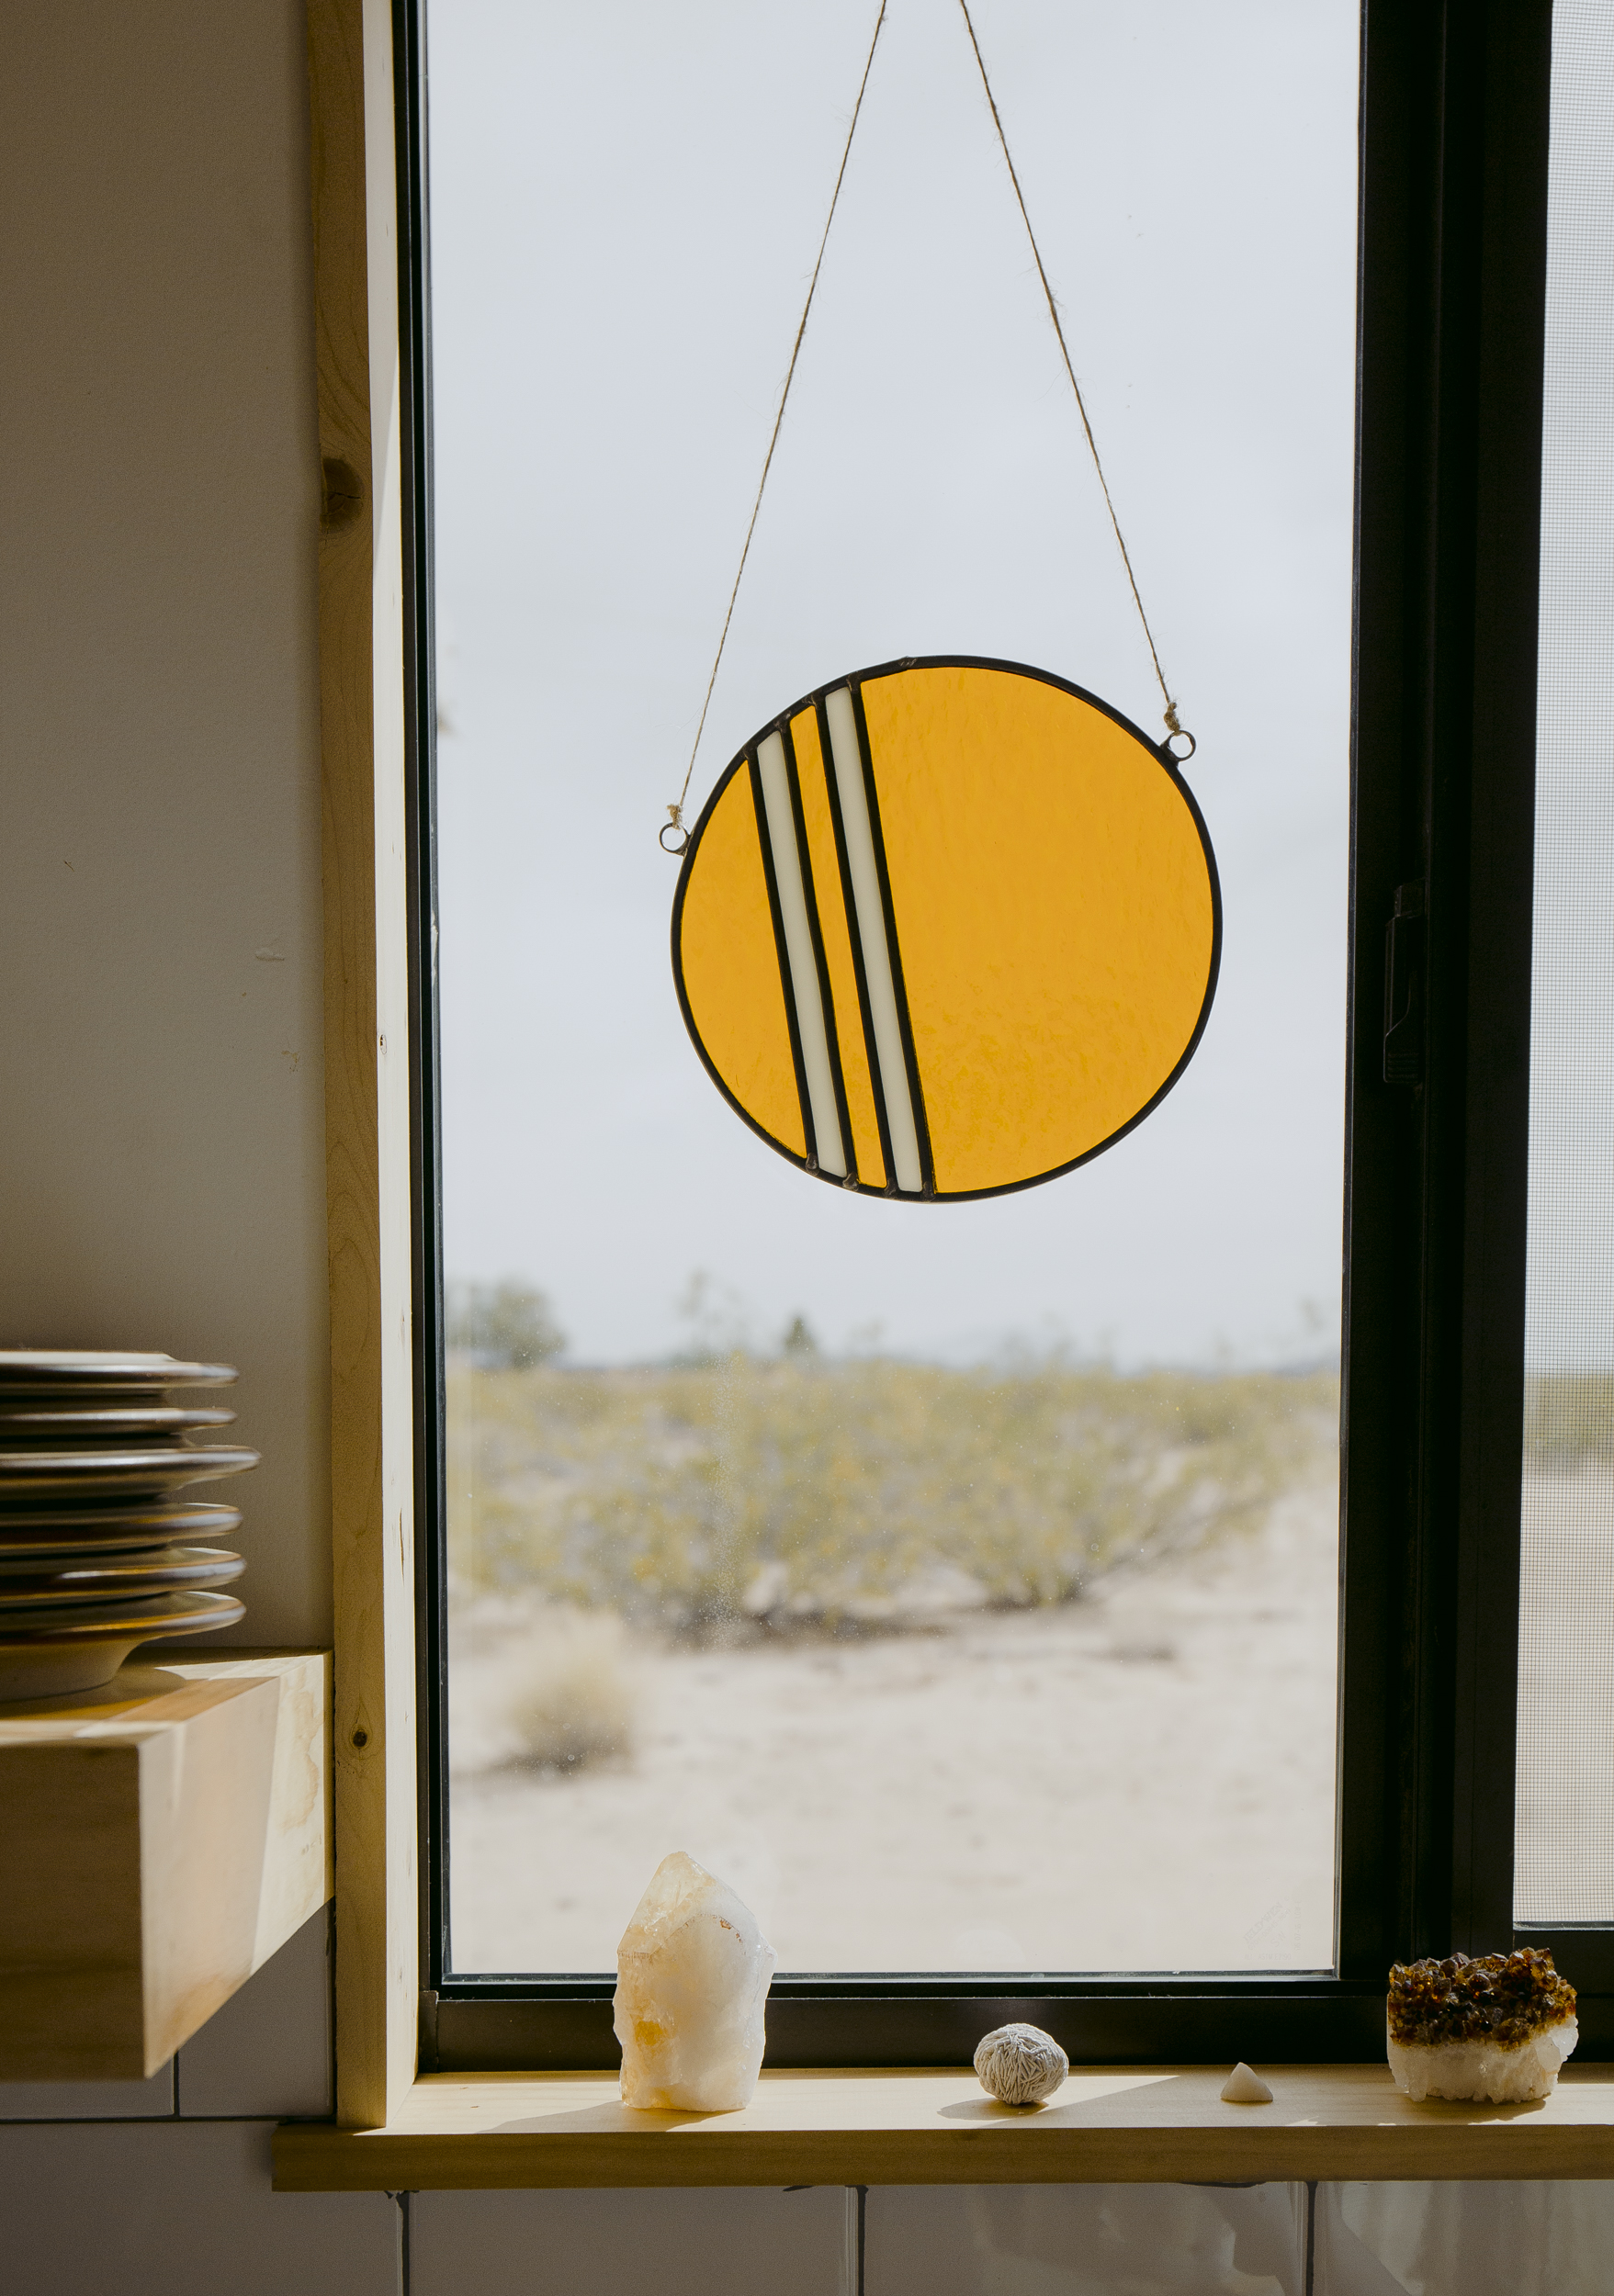 Kathrin's stained Striped Circle in Amber suspends in the kitchen window of her and her husband Brian's Airbnb property The Shack Attack. Her work seamlessly blends with the serene and calm natural tones inside and outside the space. A symbol of the divine power of the sun deep in the heart of the Joshua Tree desert.